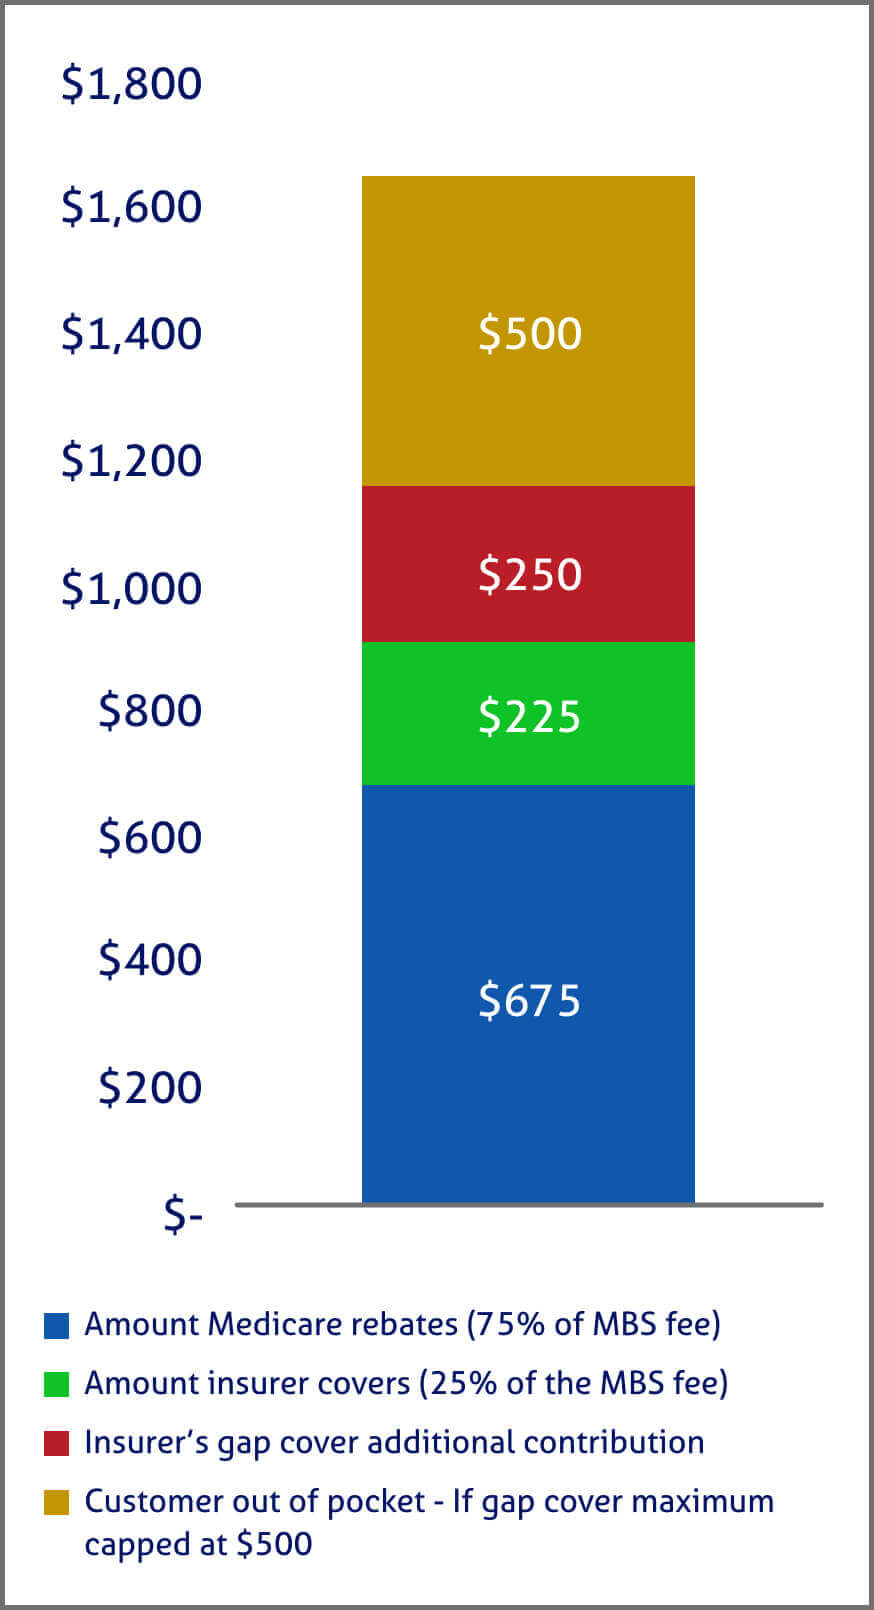 gap payment and out of pocket cost for specialist appointments and treatment on private health insurance vs medicare